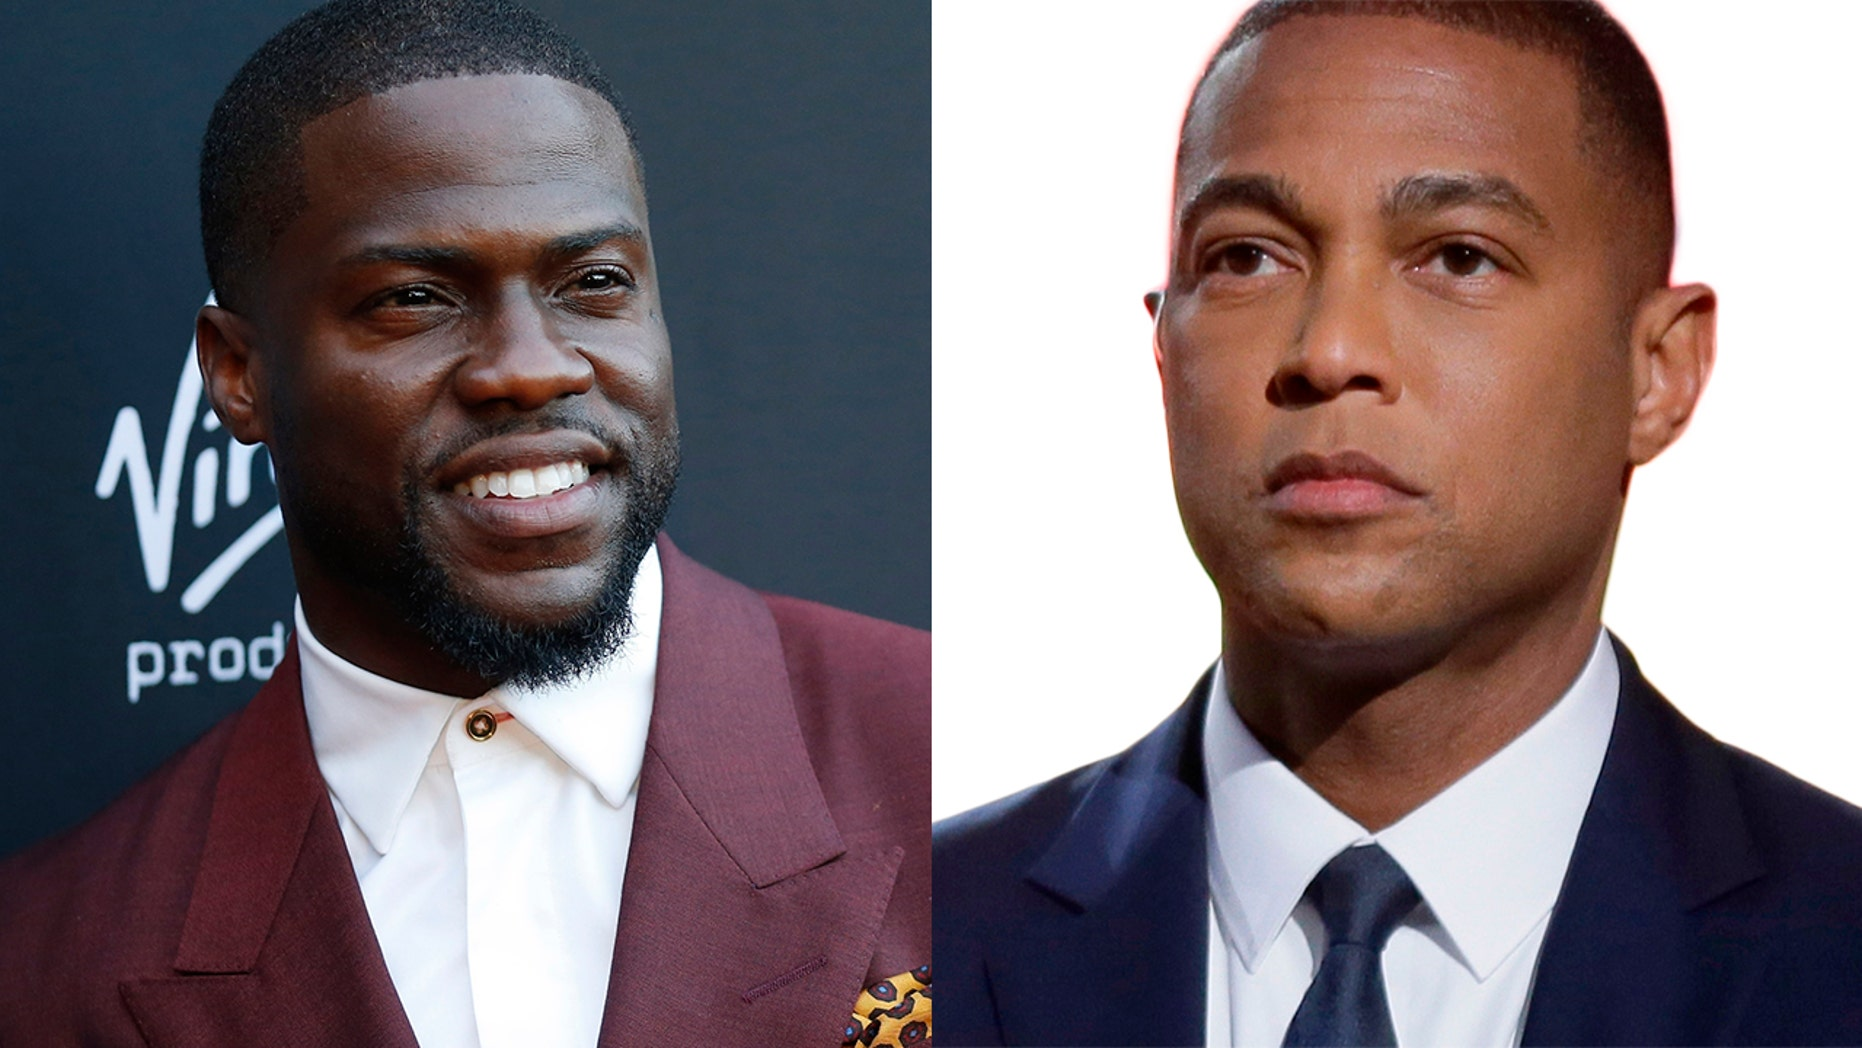 Kevin Hart is 'over' apologizing for homophobic tweets, Oscars controversy